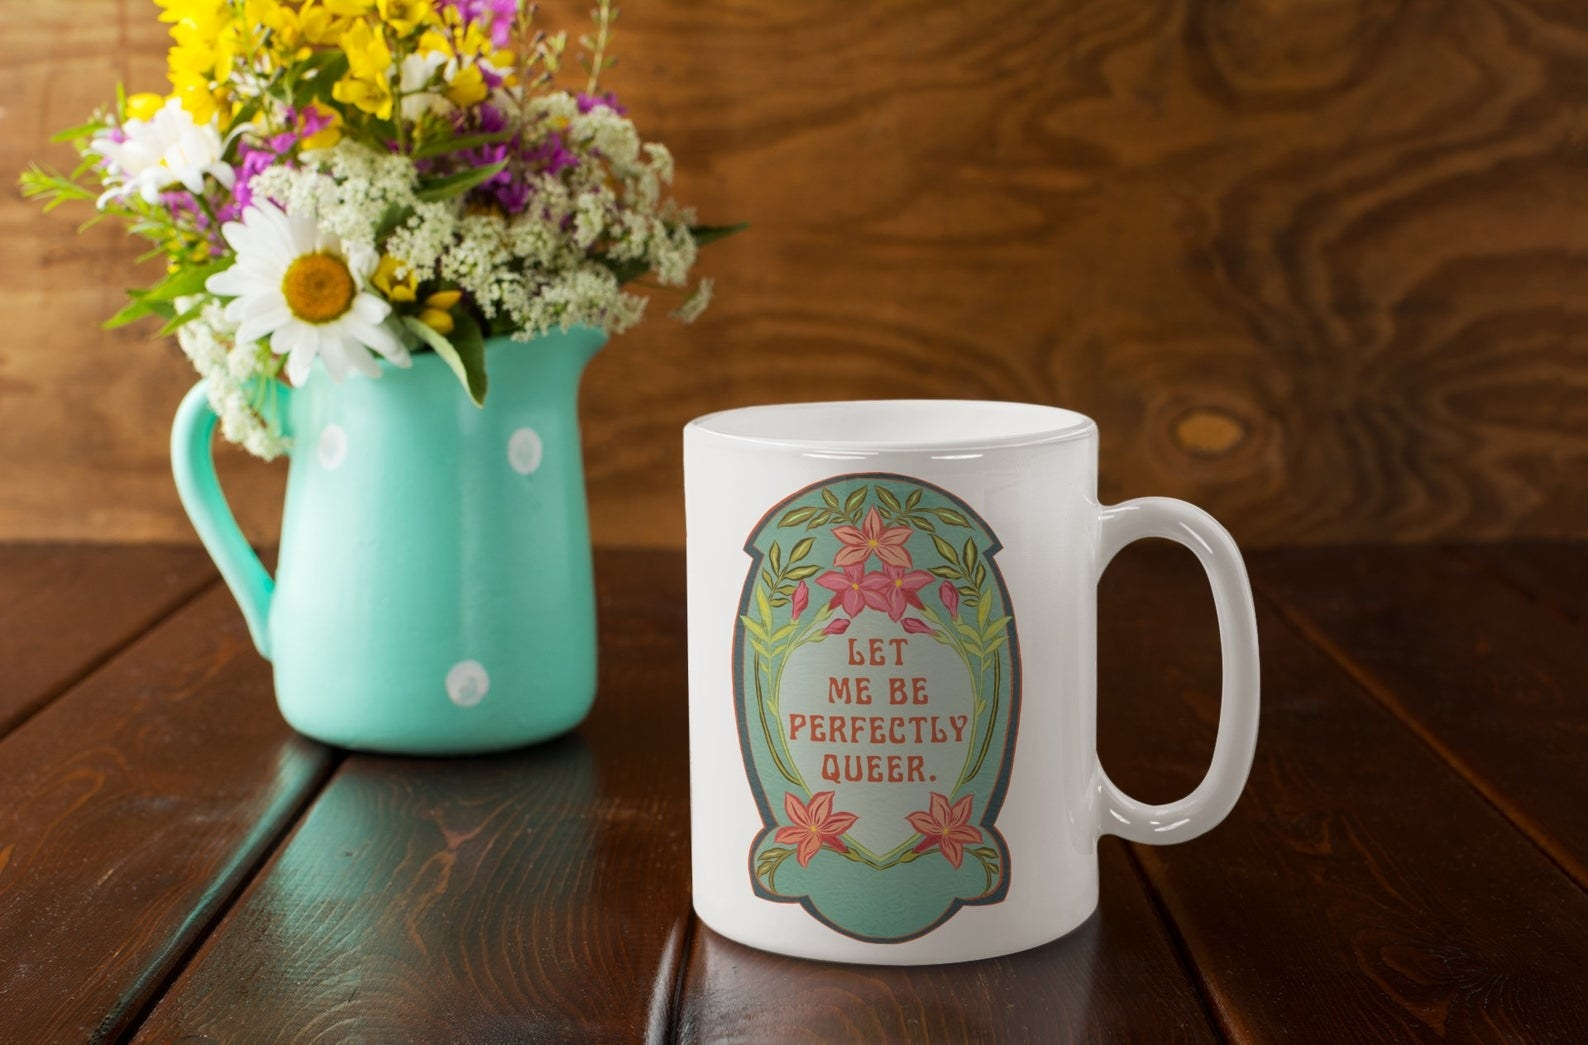 the let me be perfectly queer mug